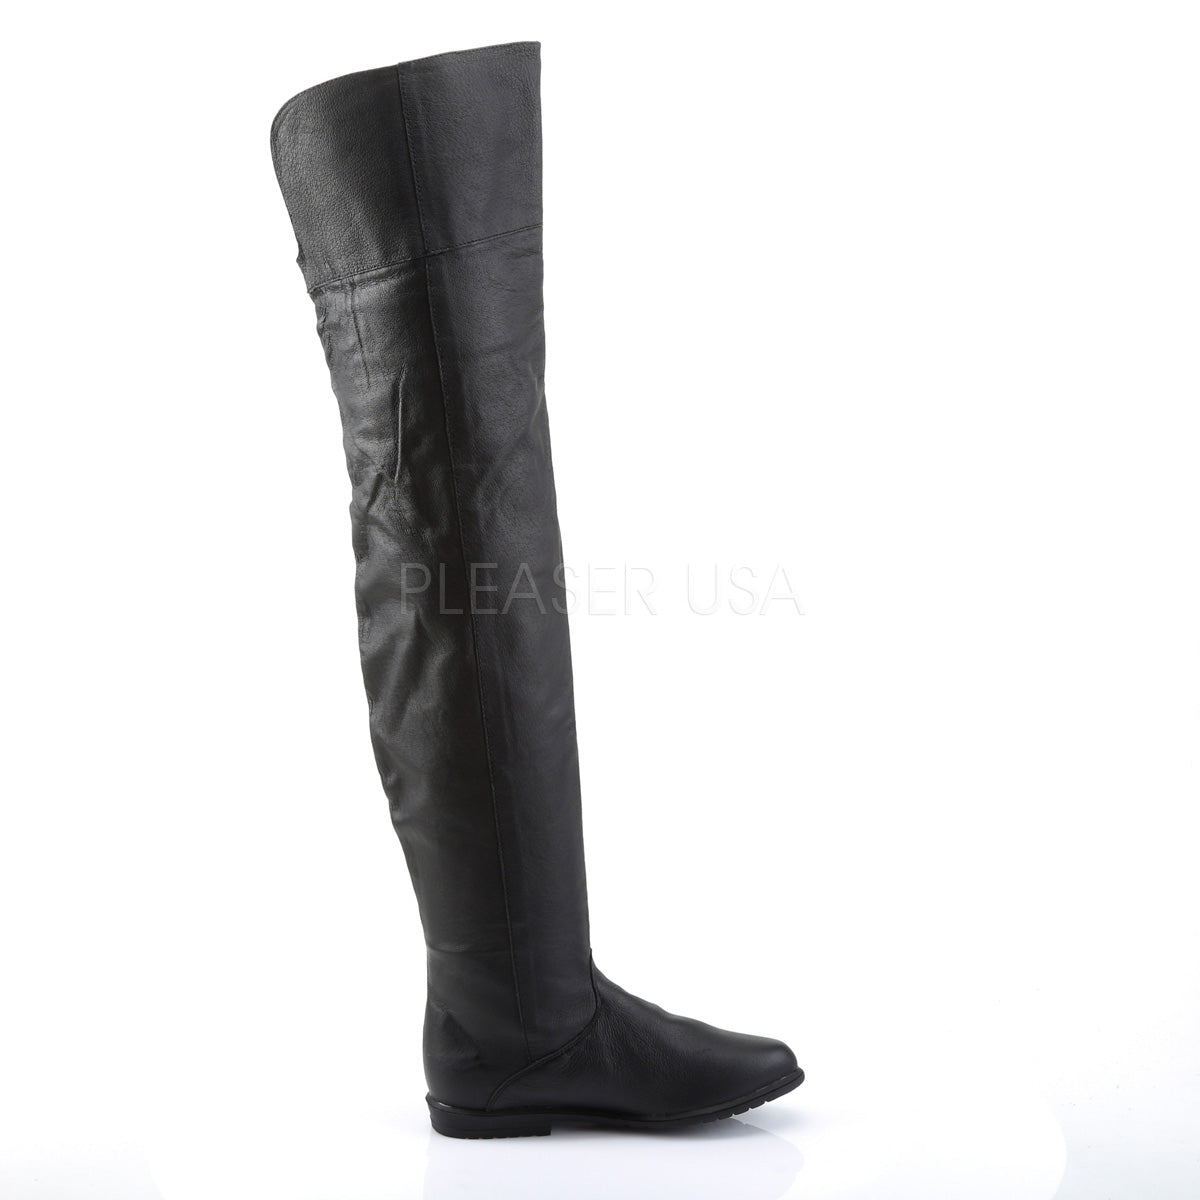 Leather Thigh High Boots with 3/4-inch